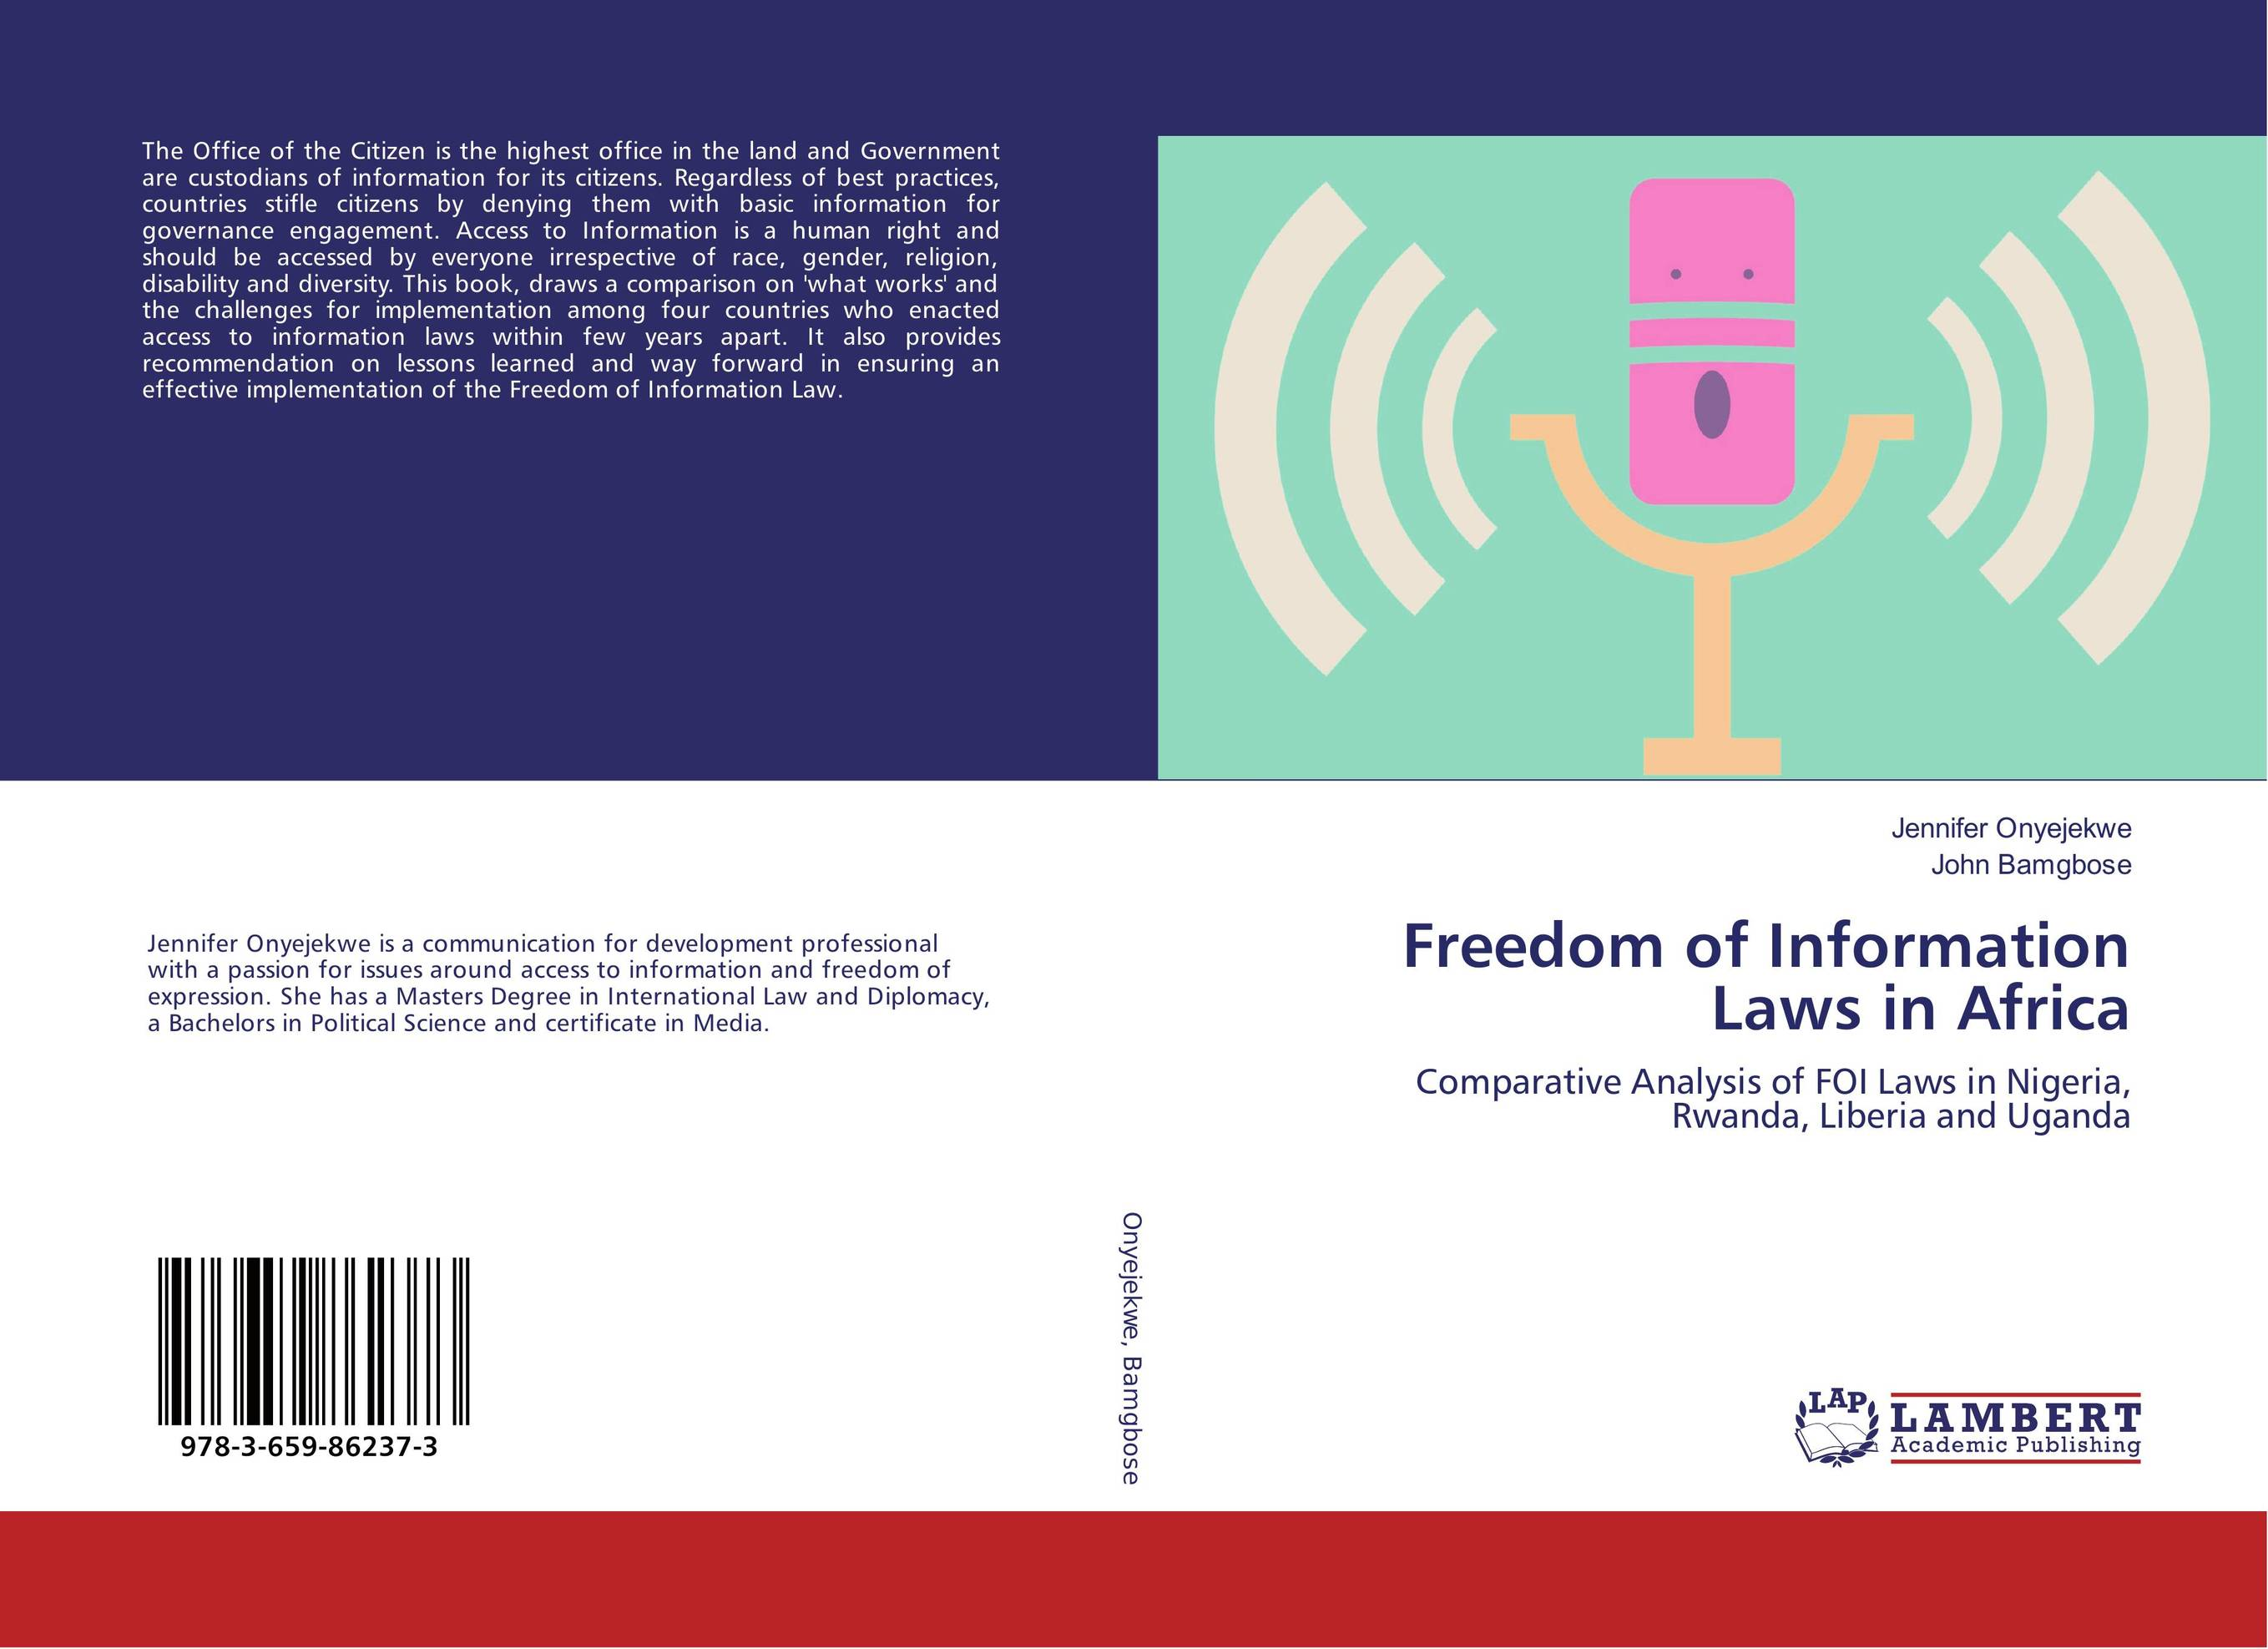 Freedom of Information Laws in Africa mart laar the power of freedom